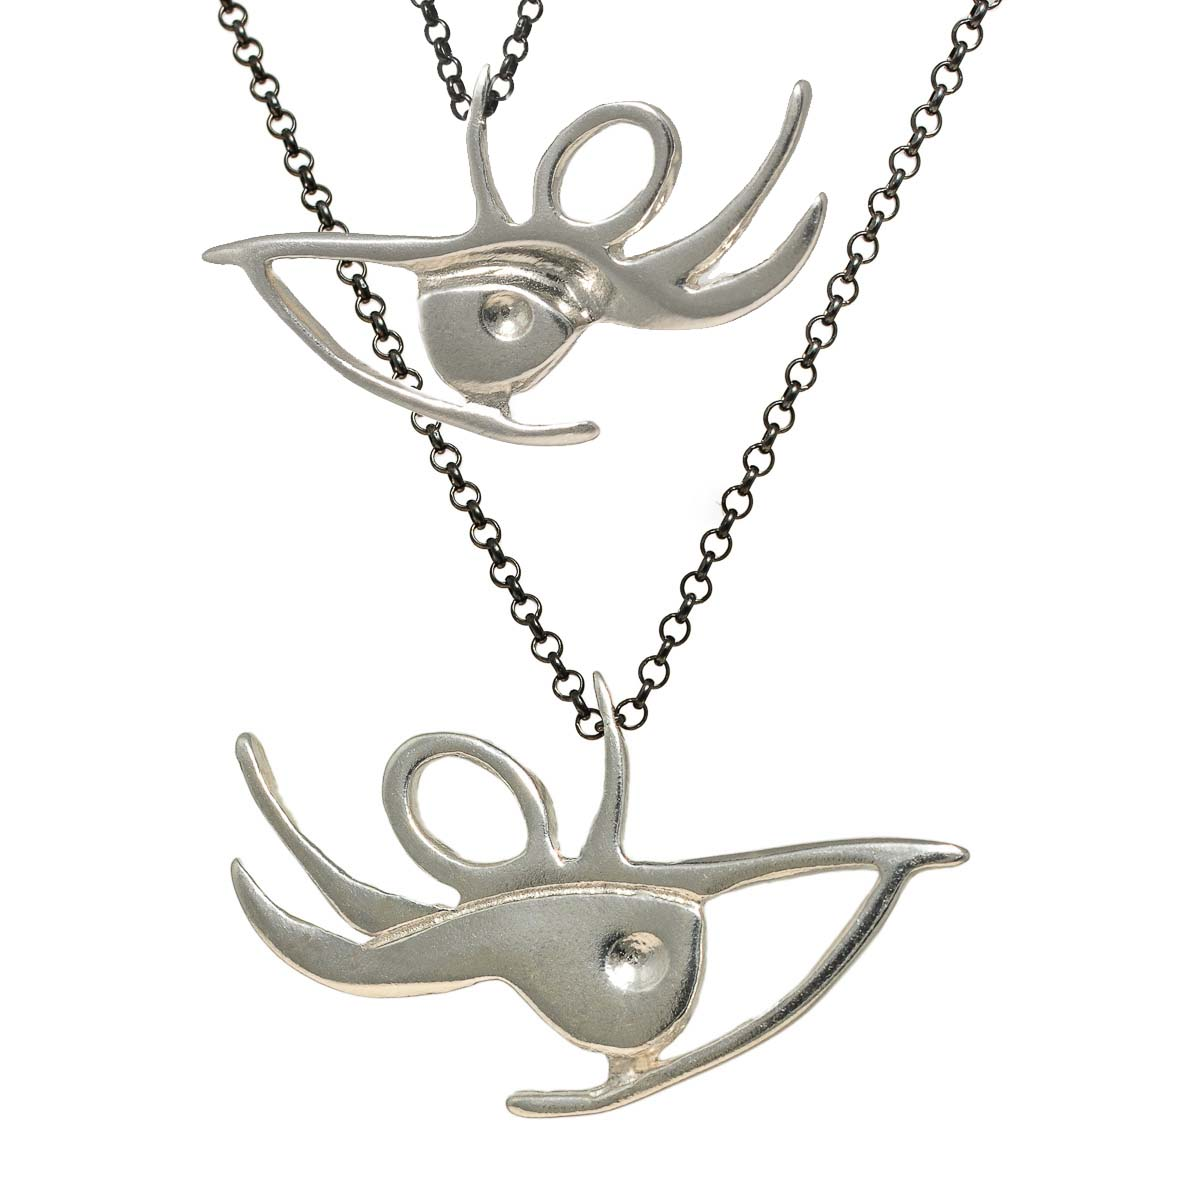 Eye necklace in sterling silver. Design and handmade for Bead A Boo jewelry by Katerina Glinou.